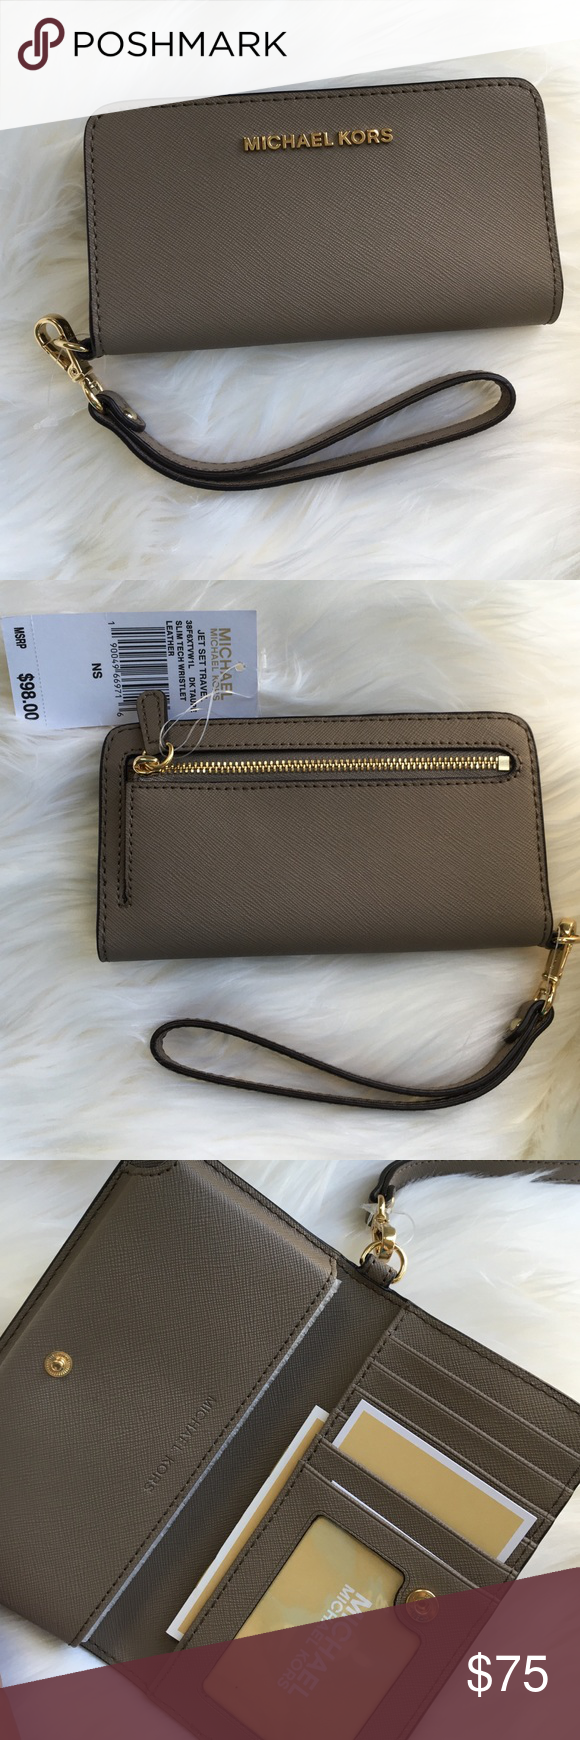 About Michael Kors Wristlets Whether getting ready for a night at the club with your girlfriends or for an anniversary dinner at your favorite fancy restaurant, a Michael Kors wristlet is the perfect accessory to complement any outfit.